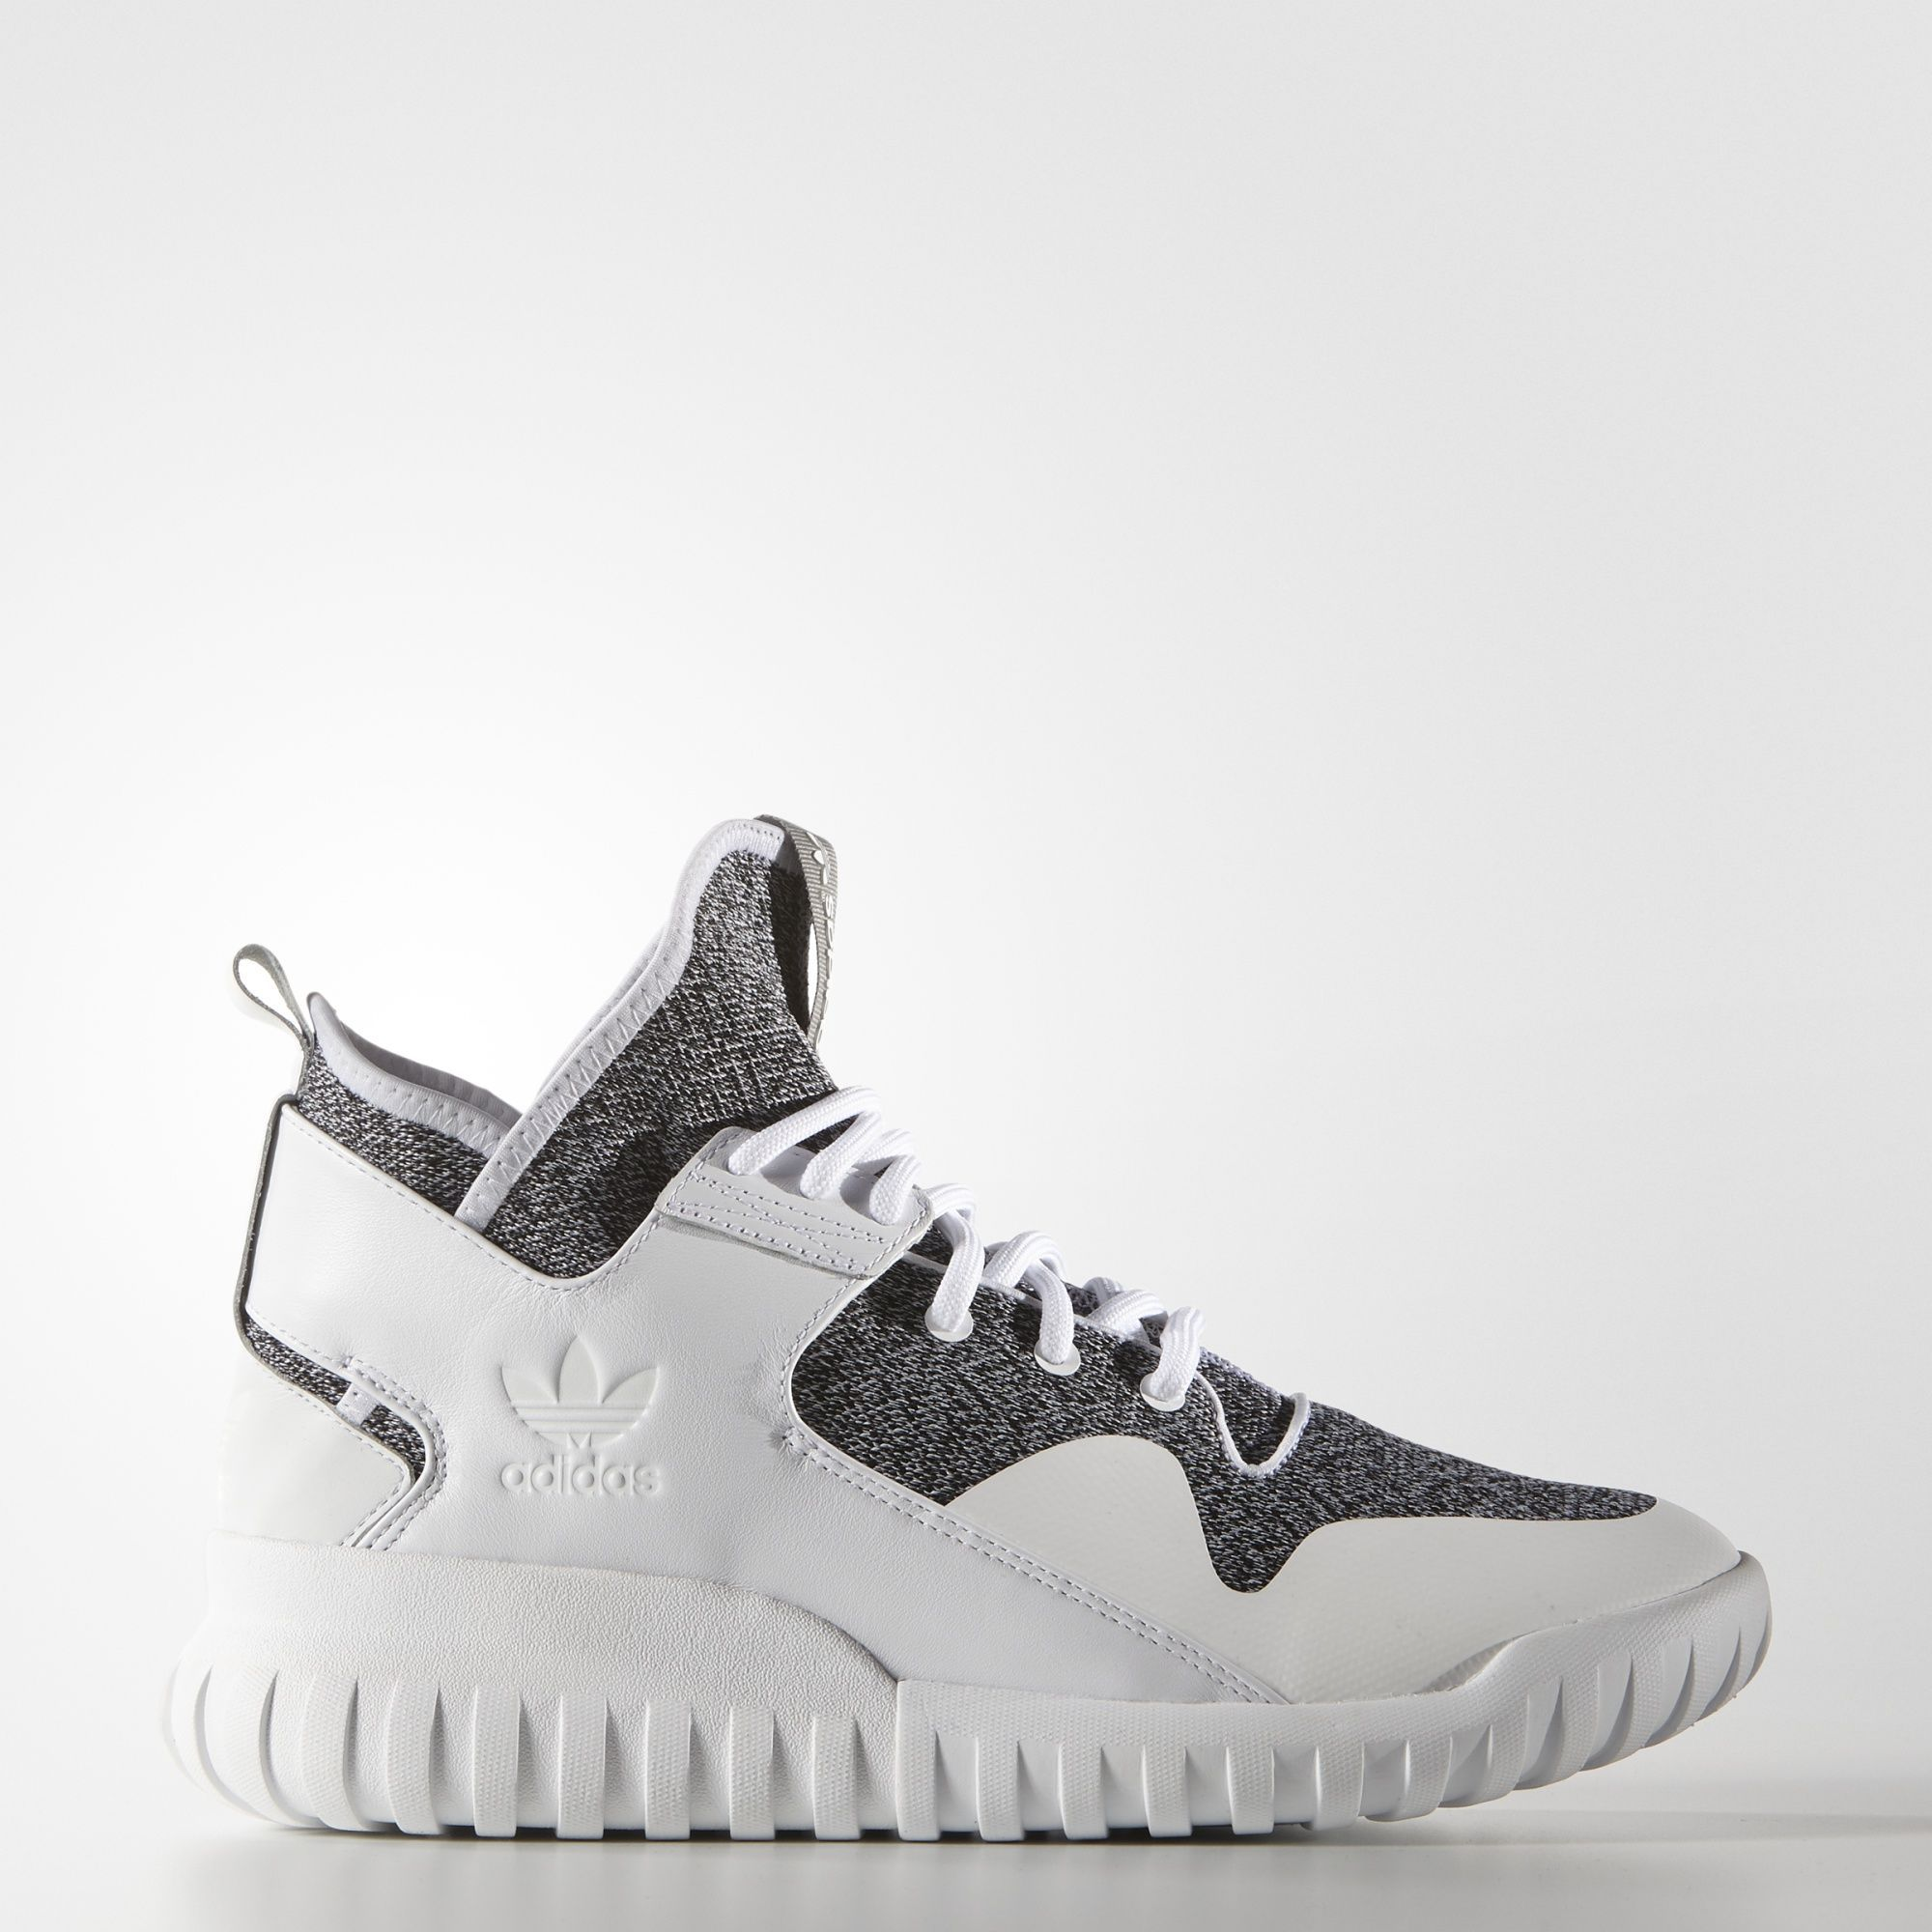 adidas - Tubular X Shoes